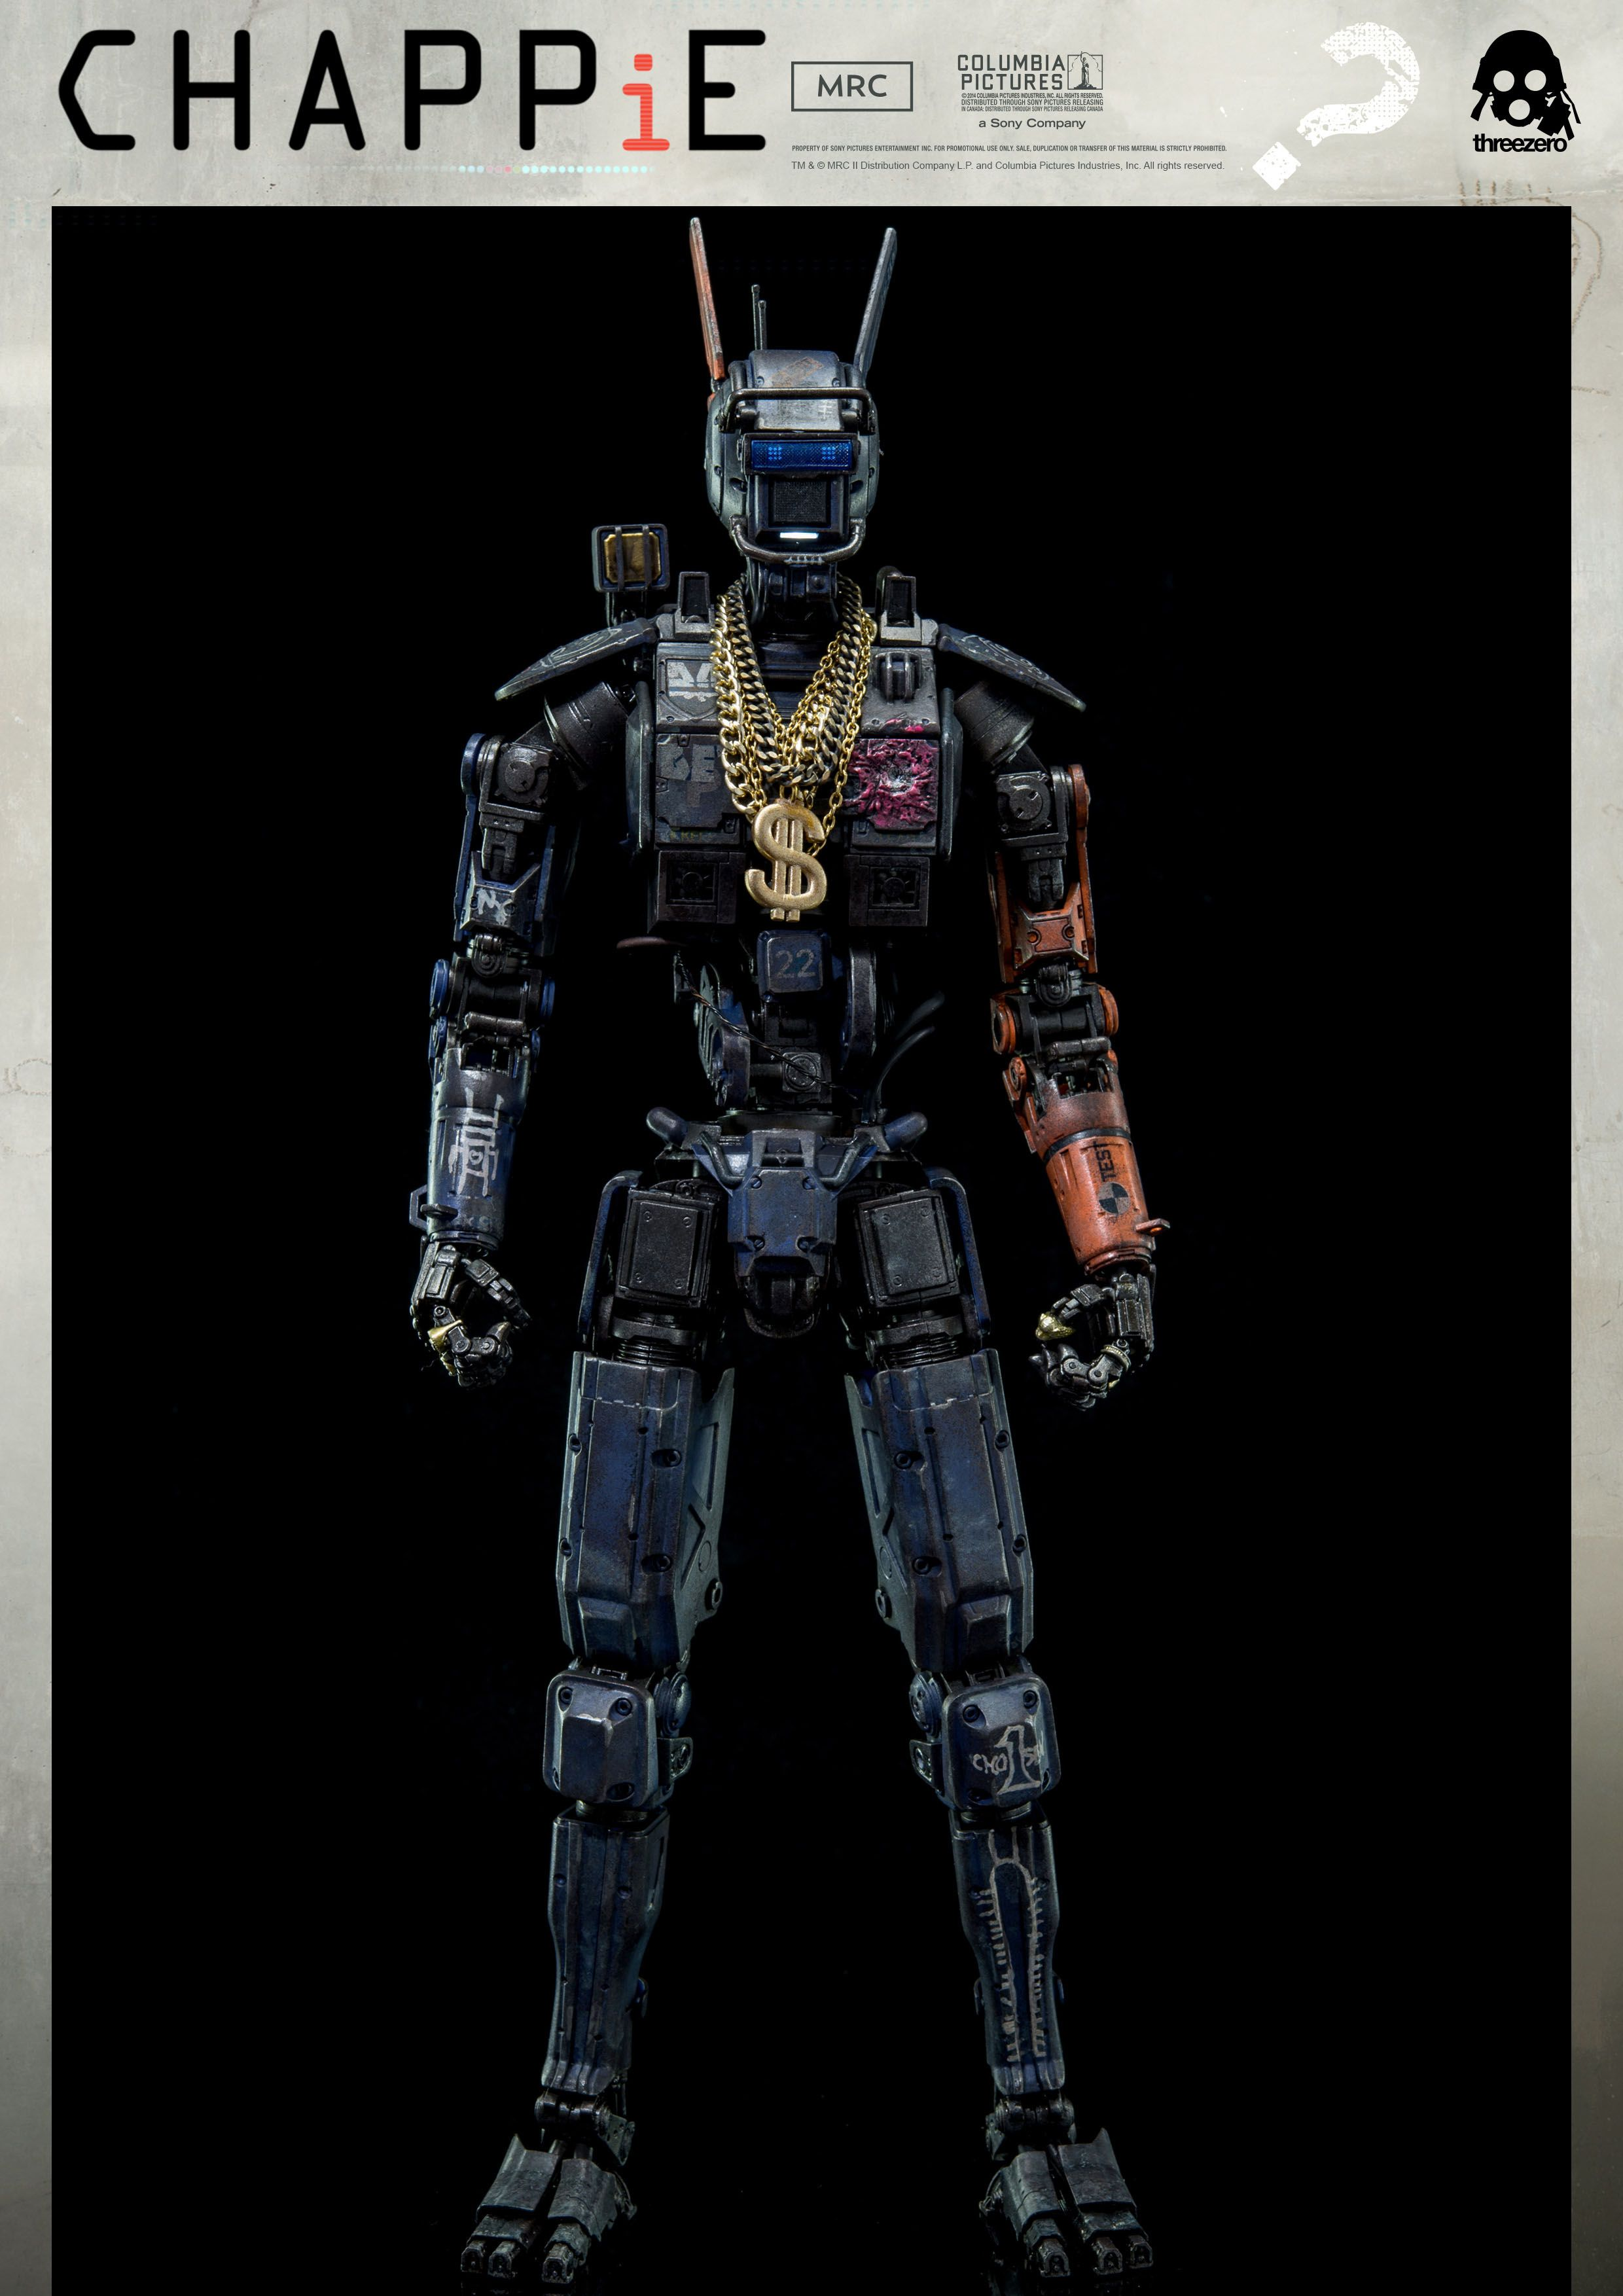 1 6th Scale Chappie Collectible Available For Pre Order On March 16th 9 00am Hong Kong Time At Www Threezerostore Com For Robot Art Robot Design Weta Workshop